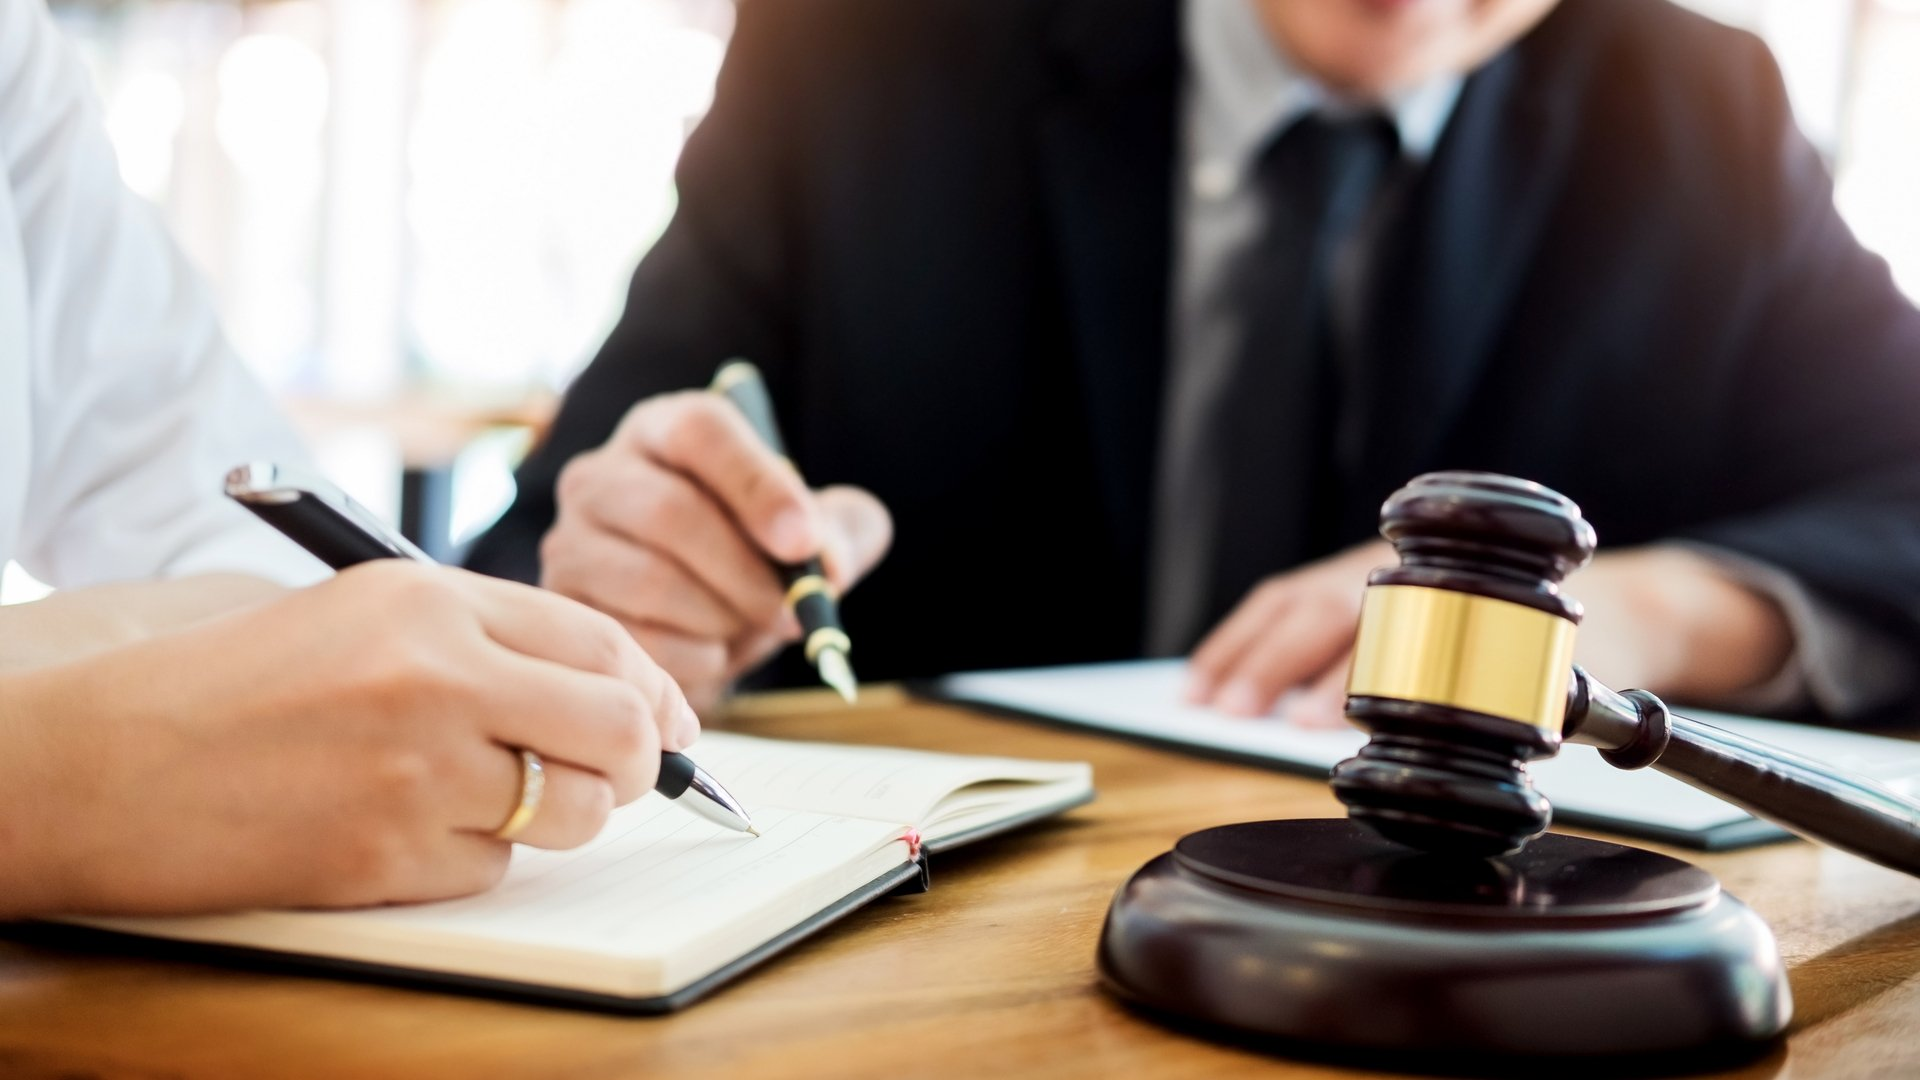 5 Most Common Reasons People Hire Attorneys